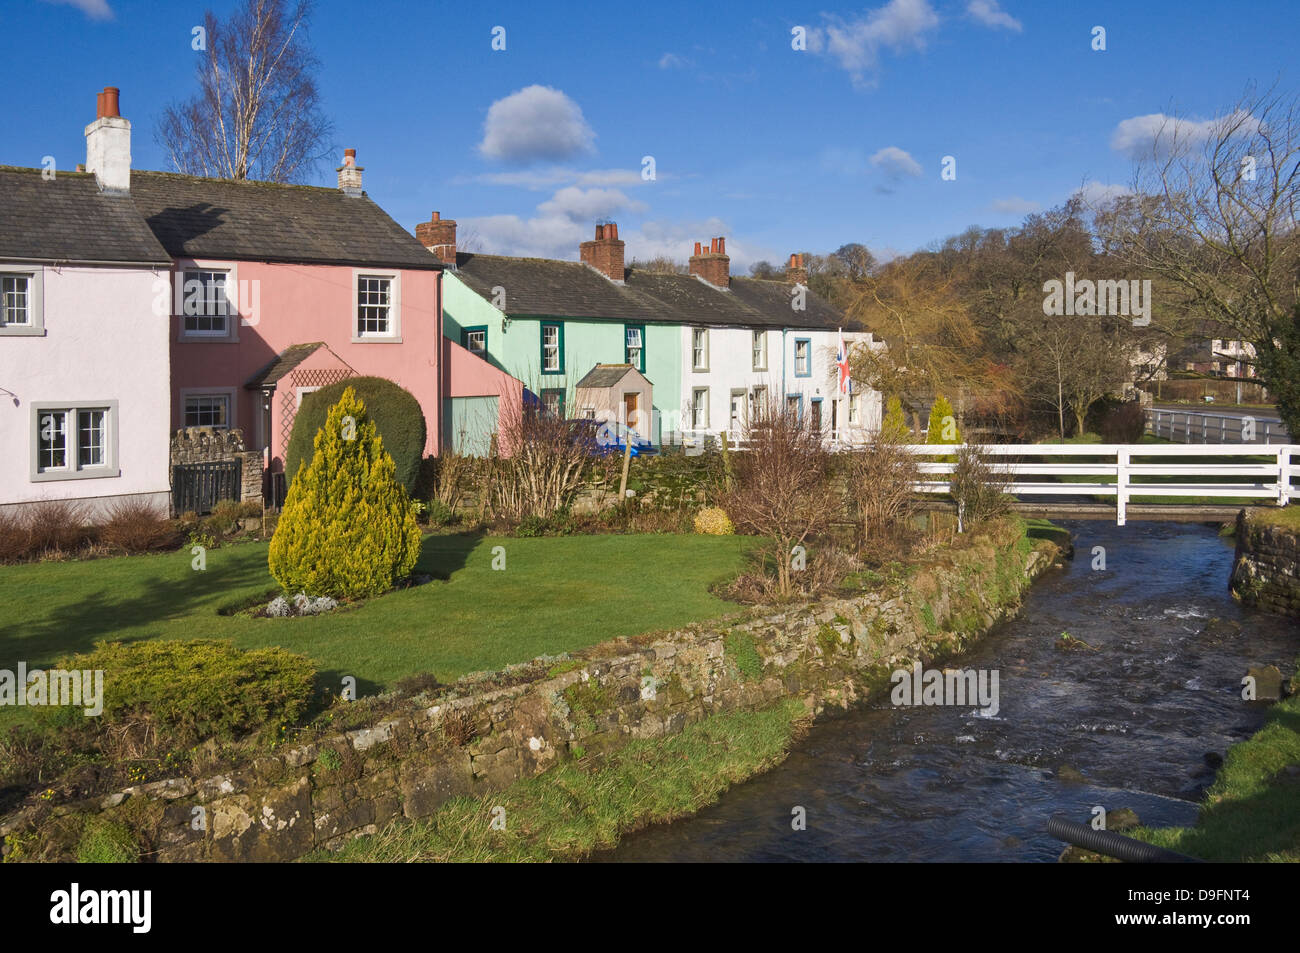 Pastel coloured cottages alongside the beck in Calthwaite, John Peel Country, Cumbria, England, UK - Stock Image